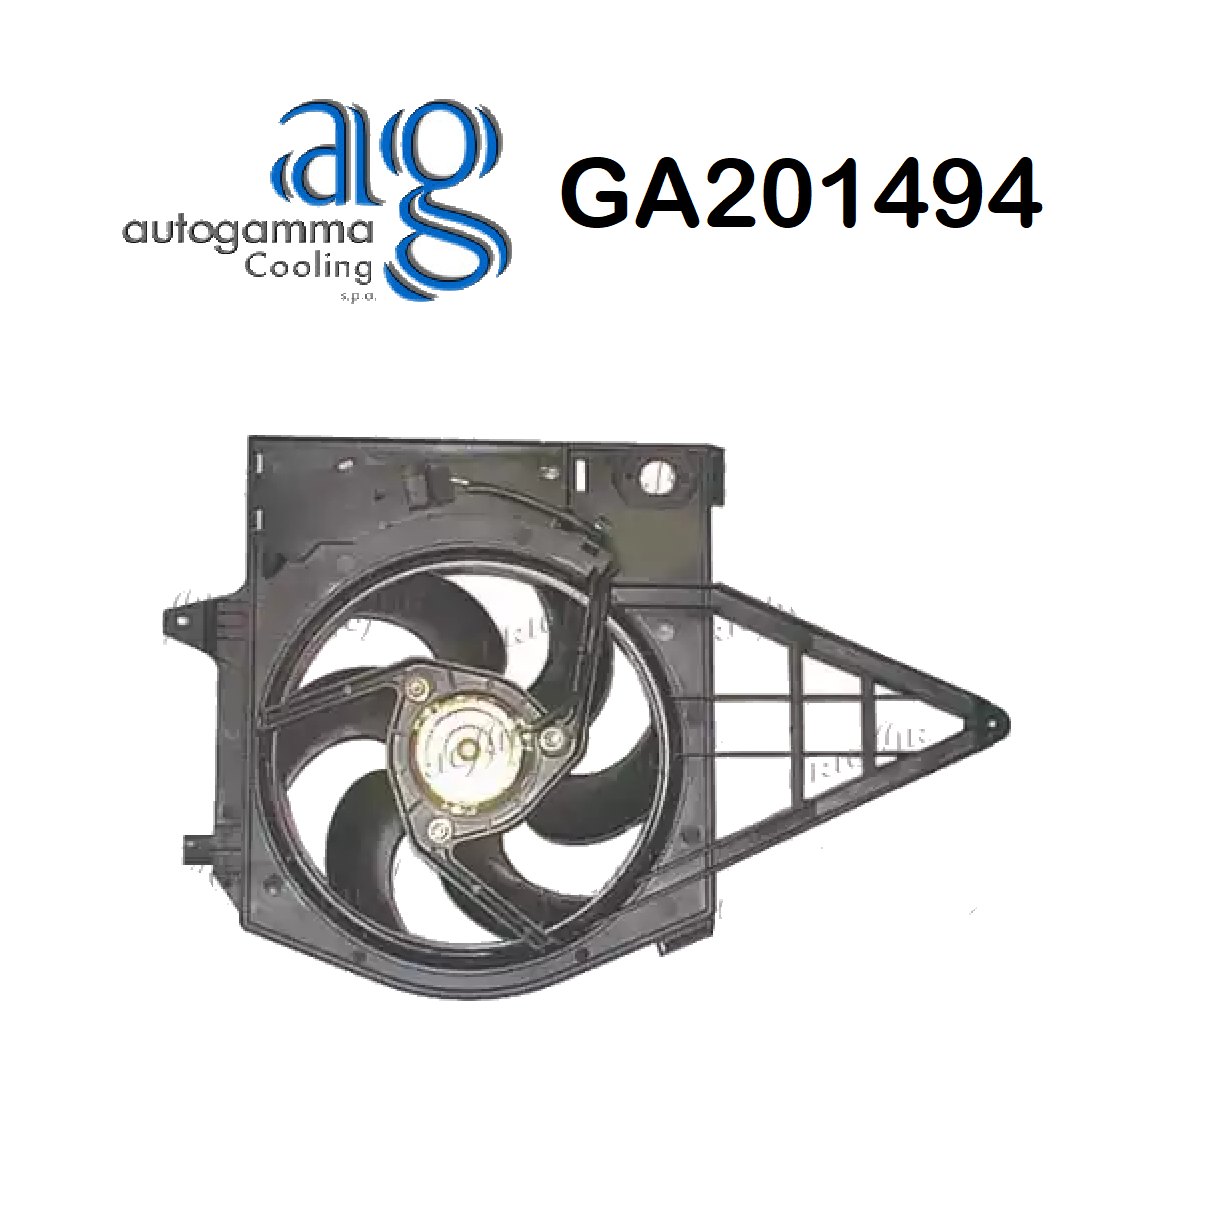 FIAT ULYSSE ENGINE COOLING FAN - PEUGEOT 806 AUTOGAMMA FOR 125345